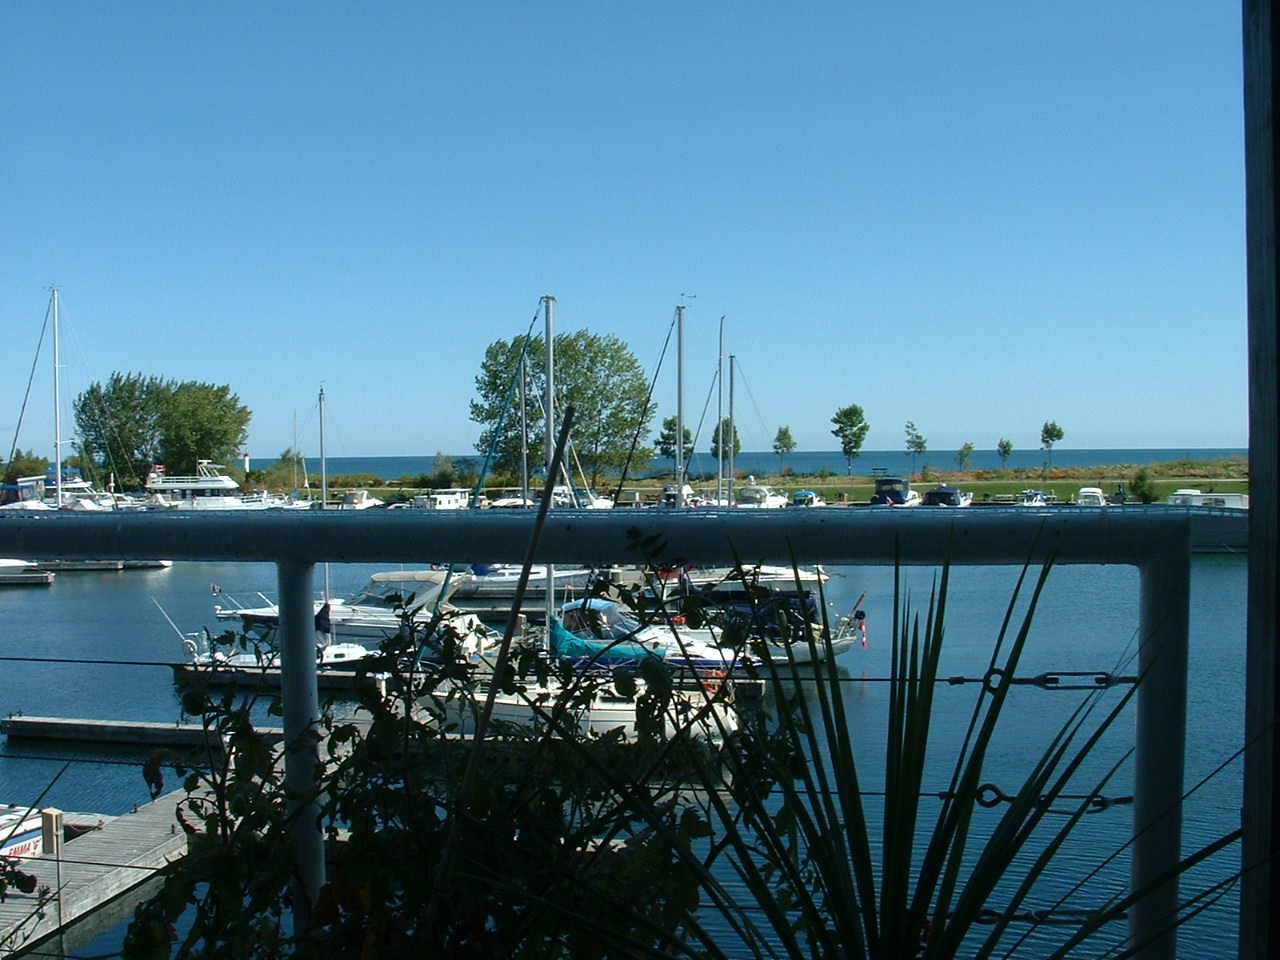 Bluffers Restaurant overlooking Lake Ontario